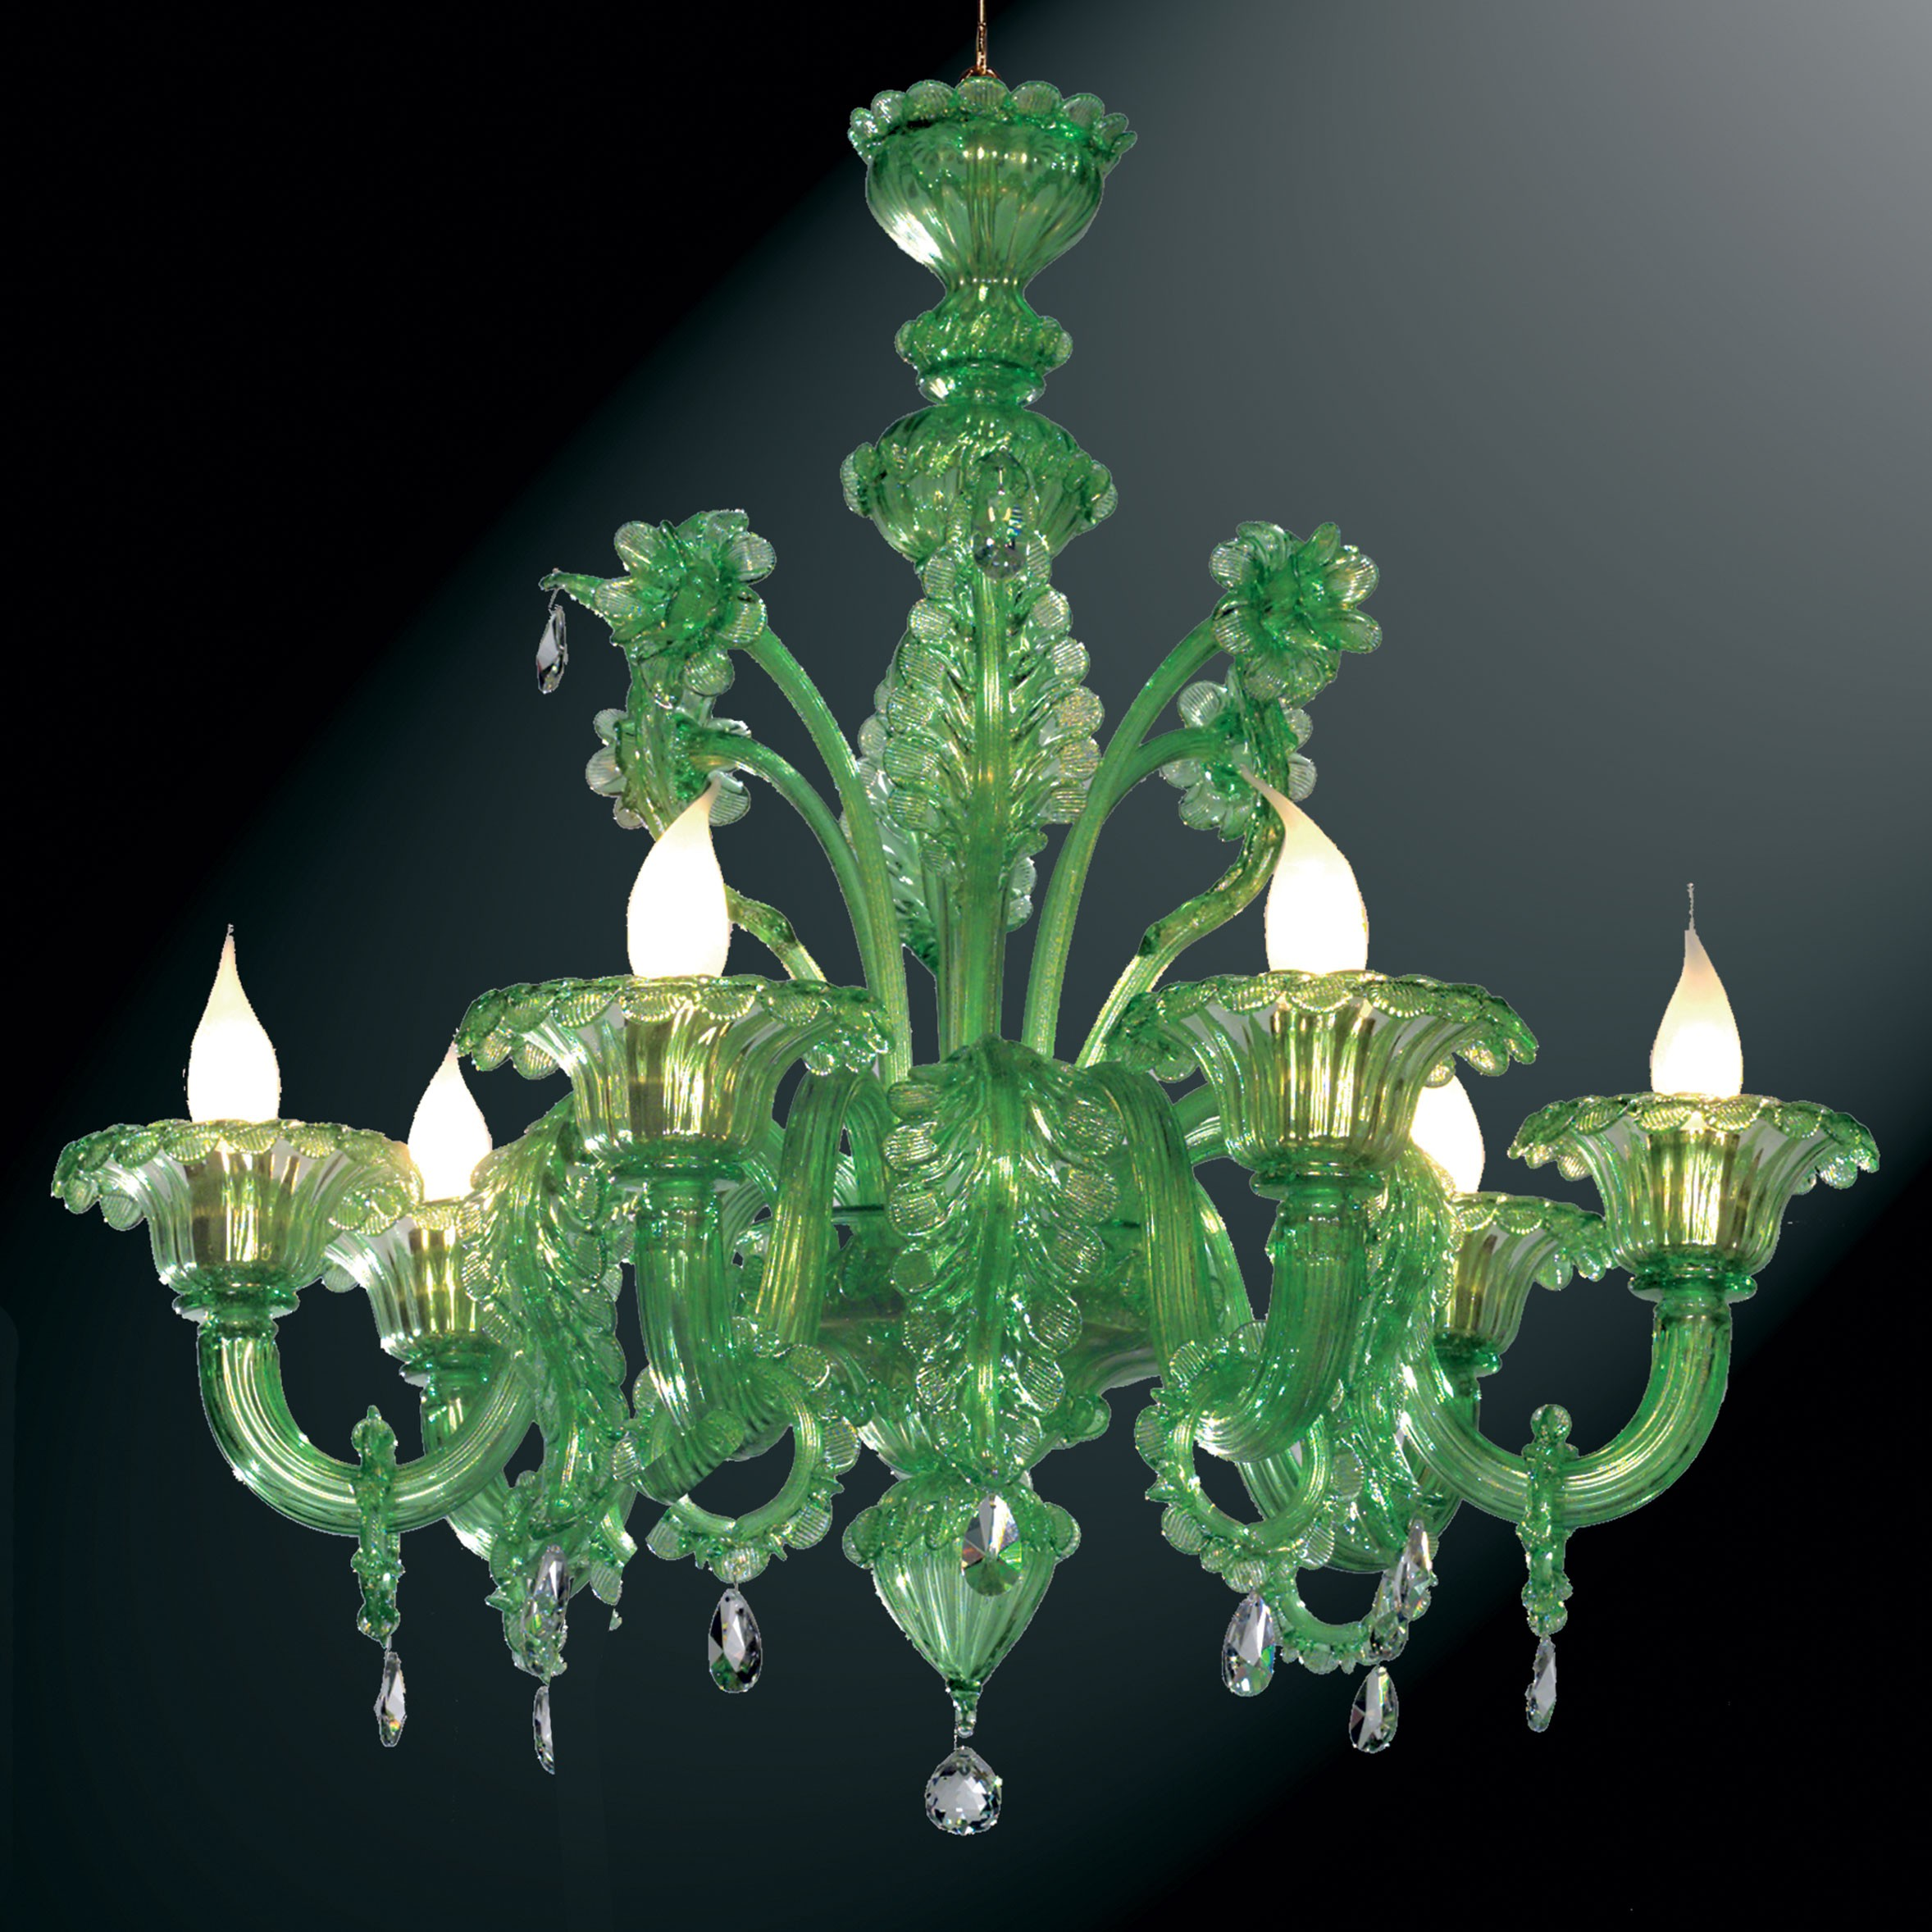 Giada green murano glass chandelier murano glass chandeliers giada green murano glass chandelier murano glass chandeliers arubaitofo Image collections